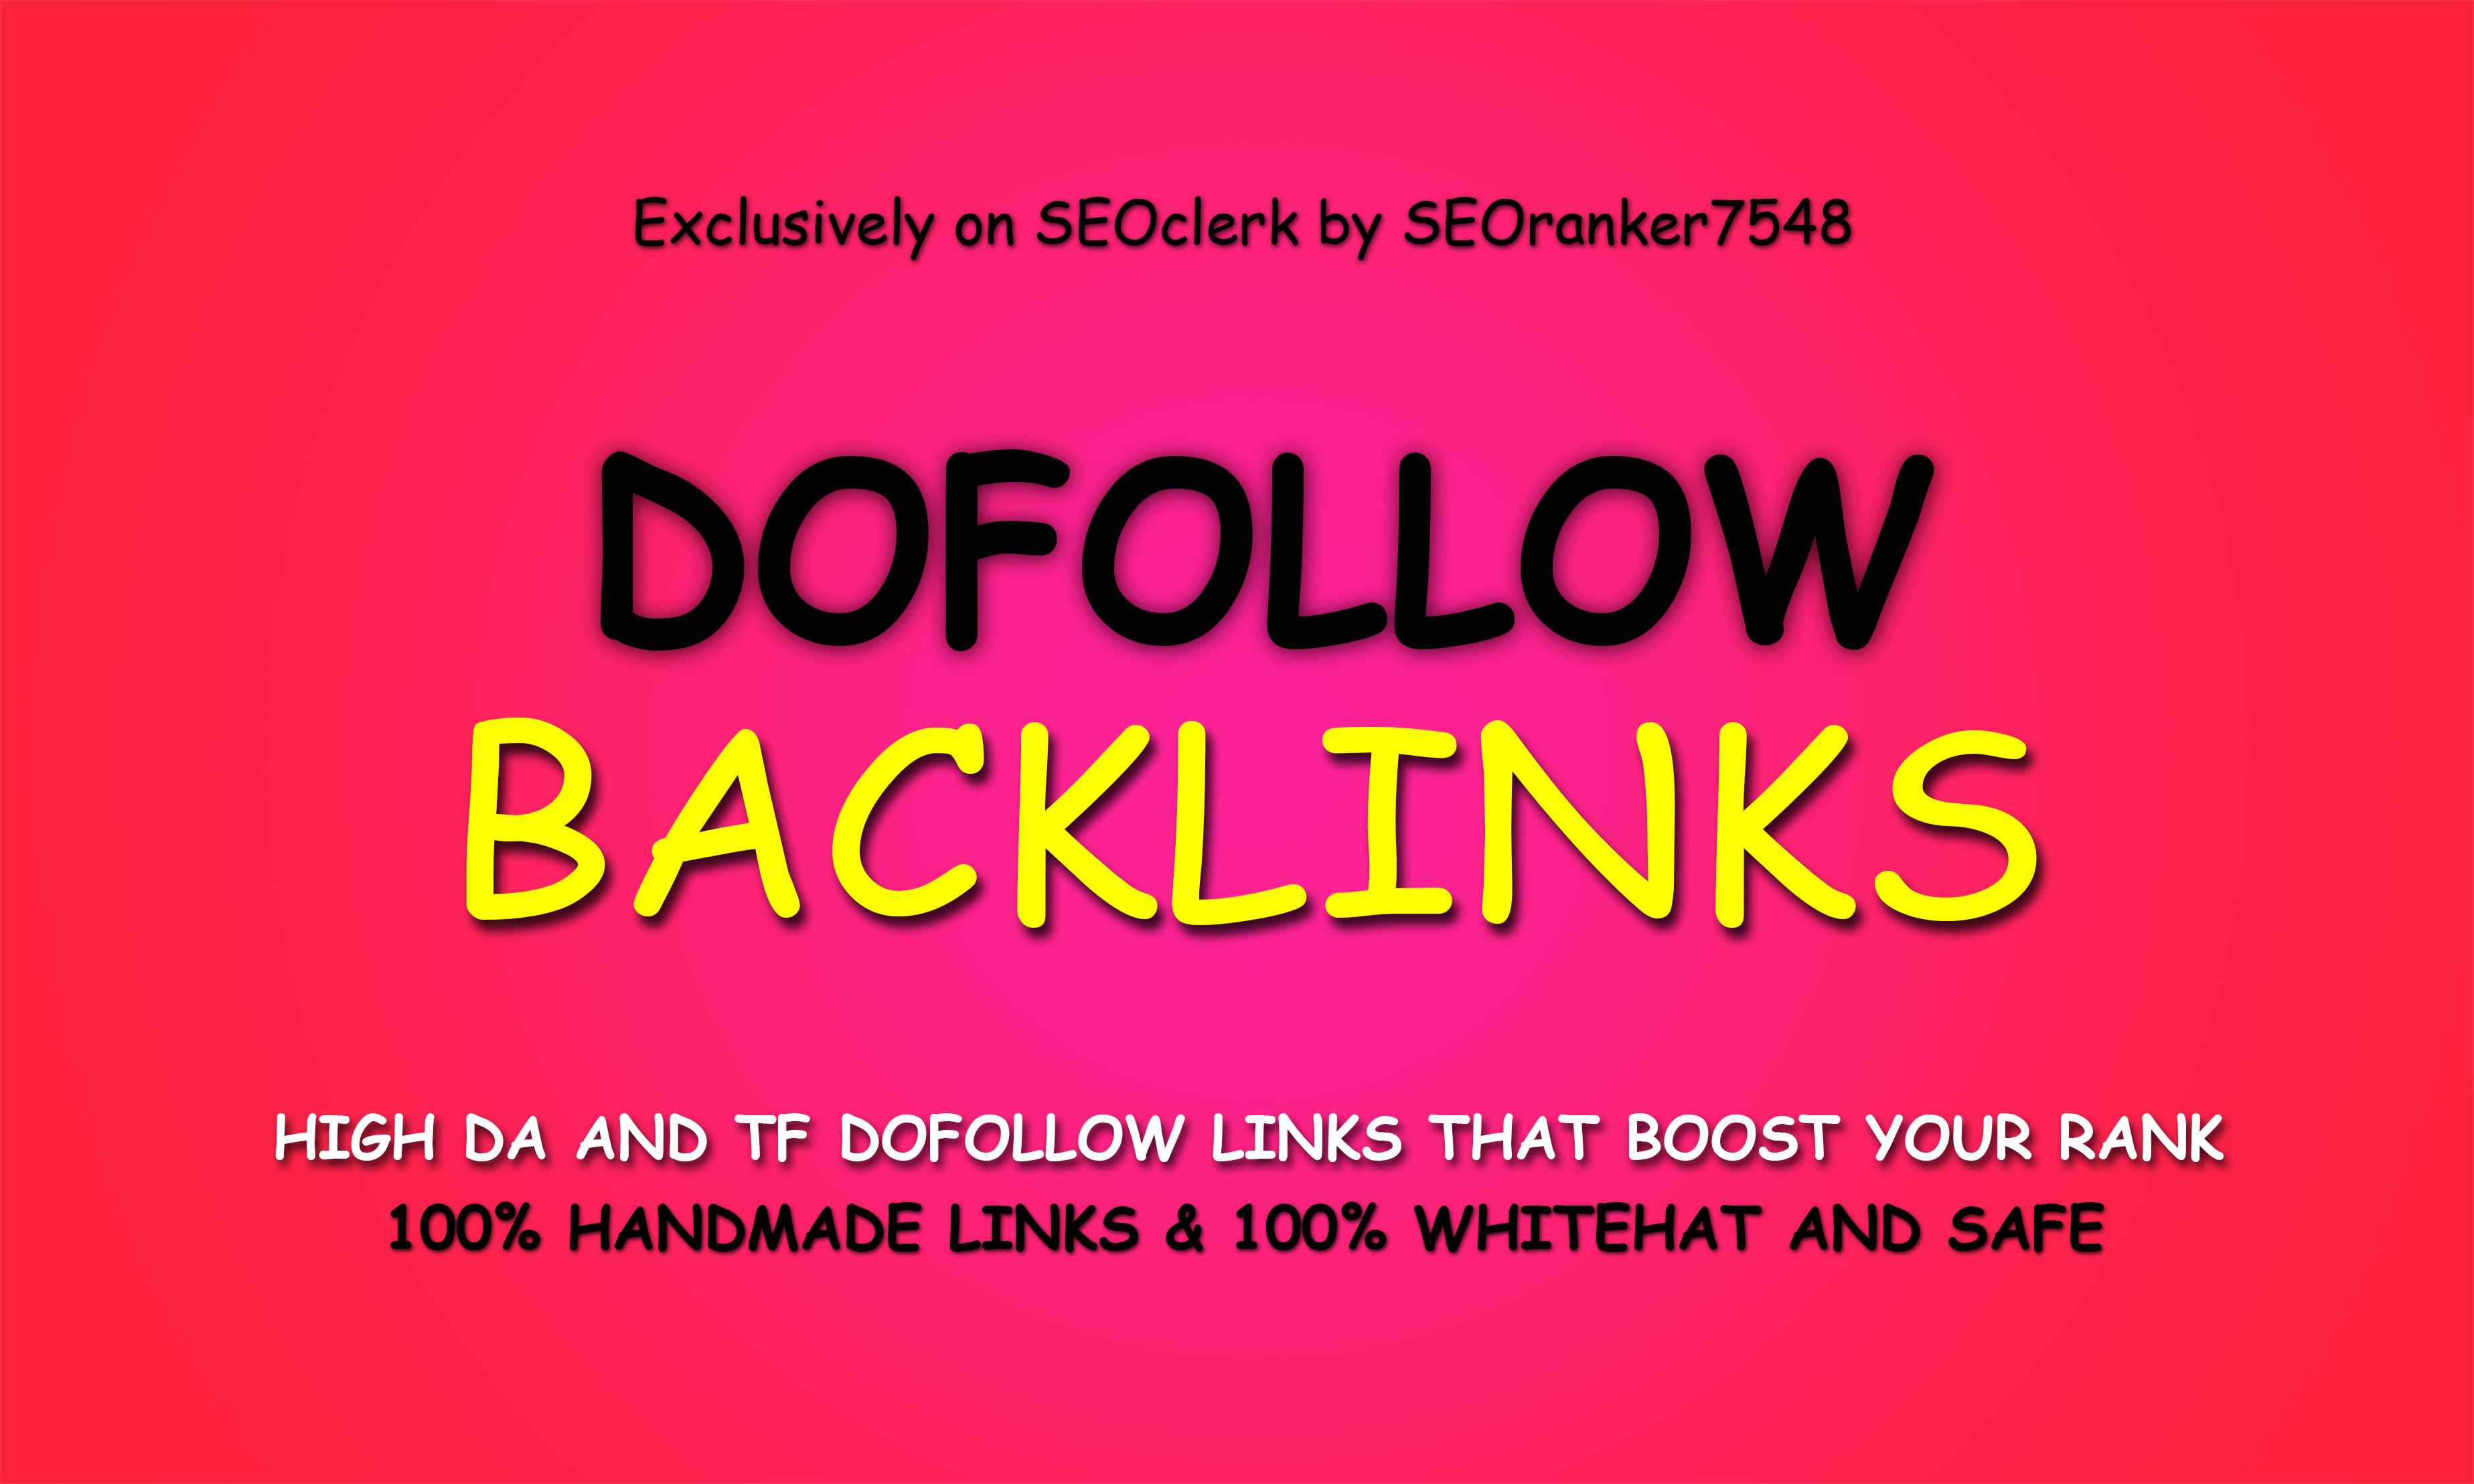 55 Authority Dofollow SEO Backlinks